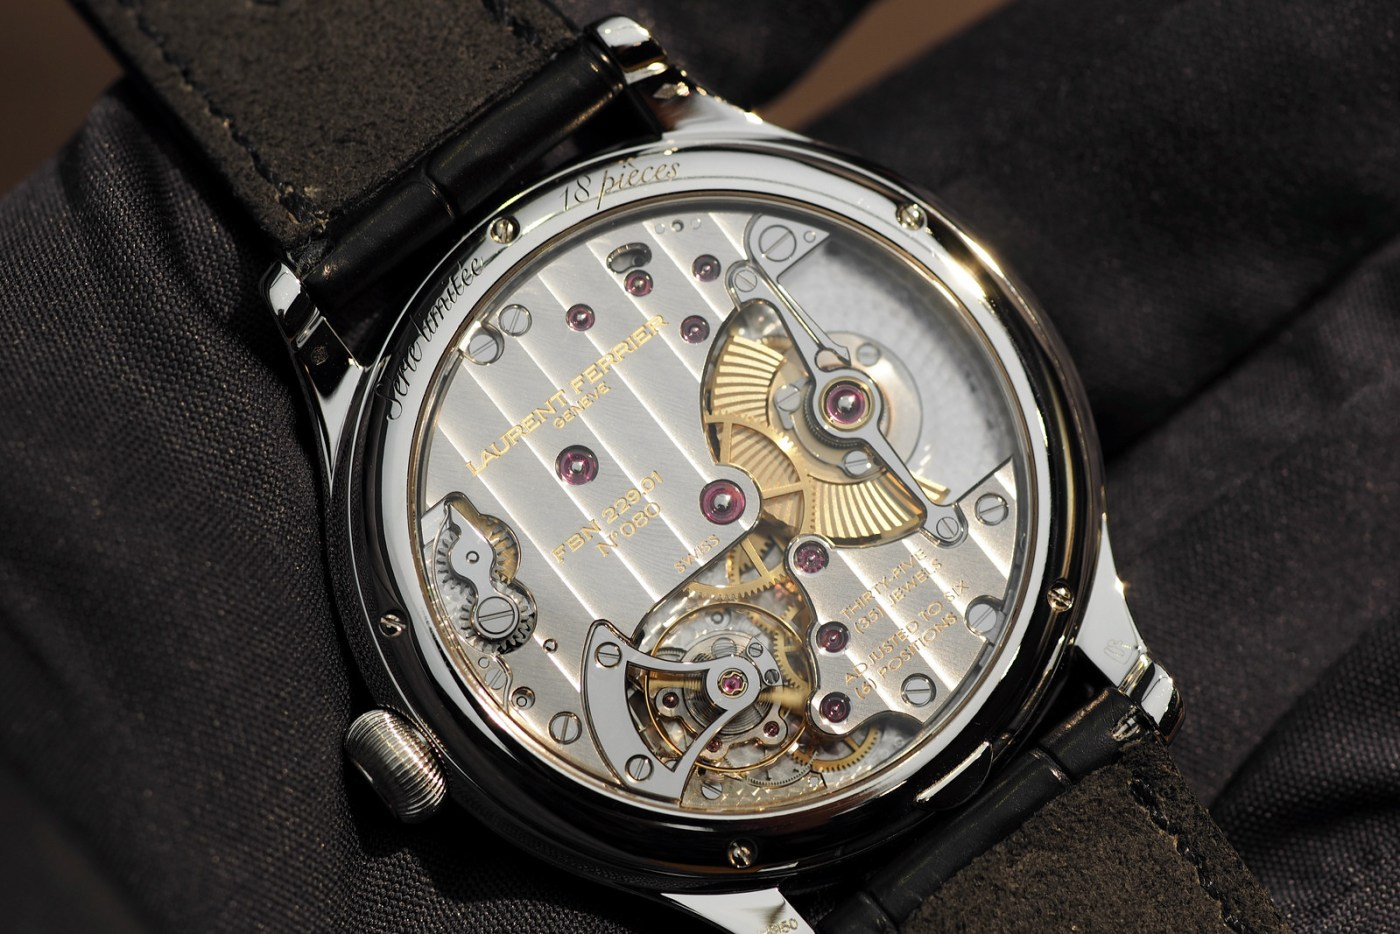 Laurent Ferrier caseback